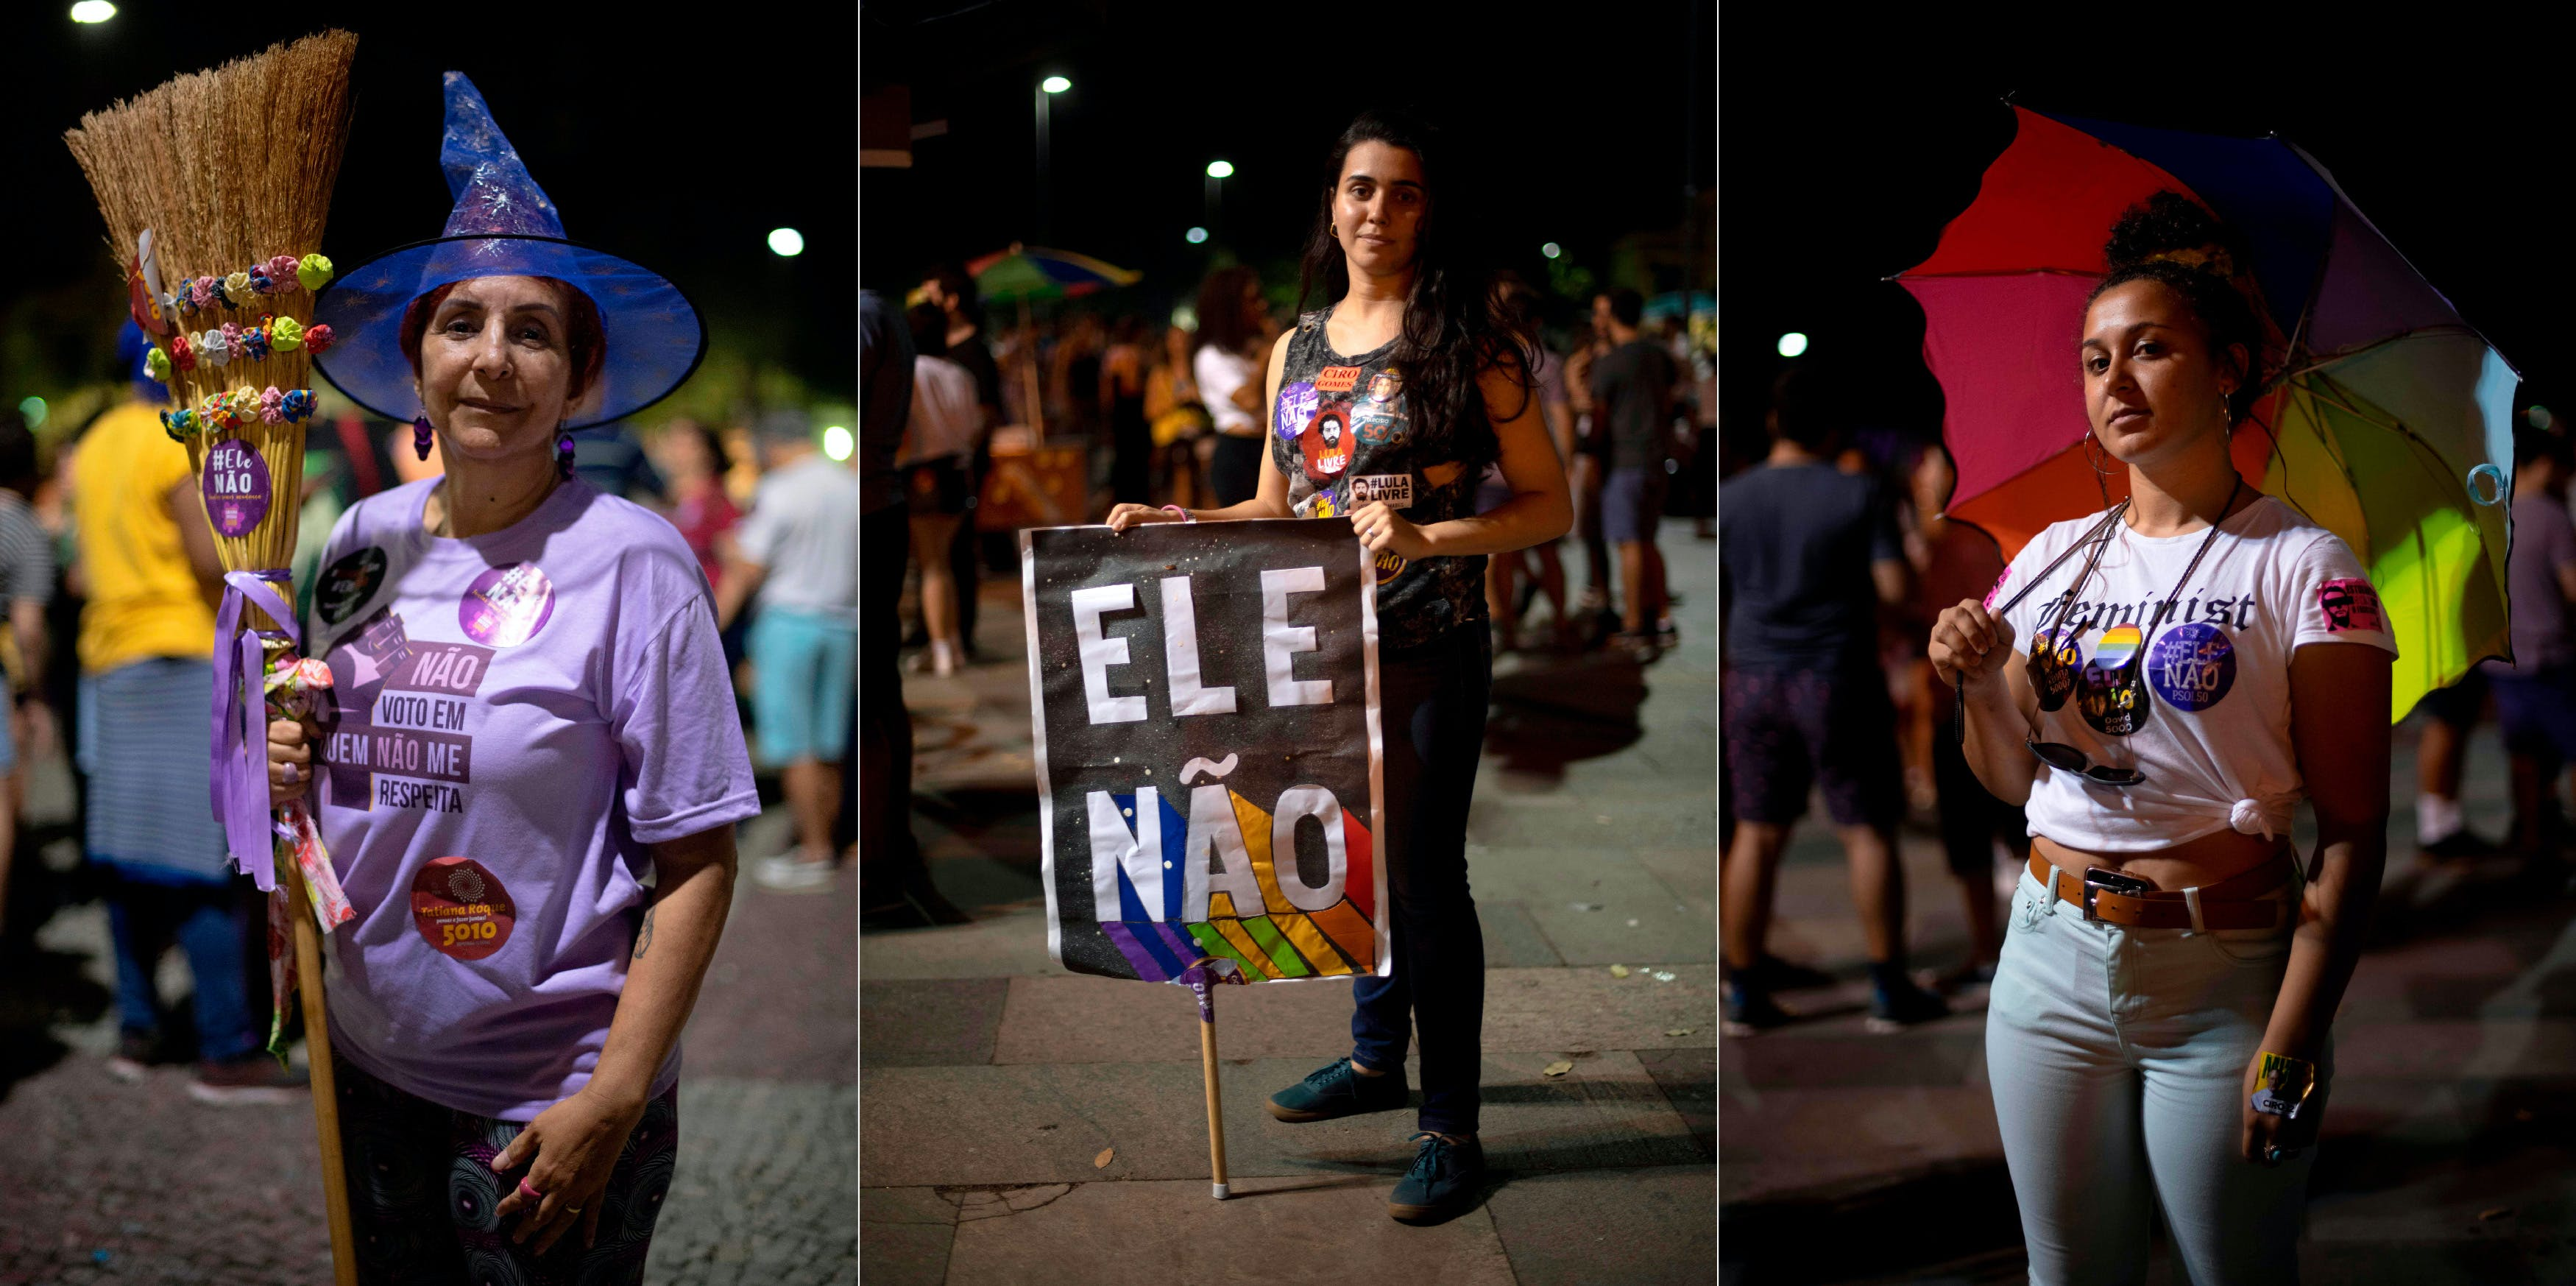 """Combo picture of Brazilian university professor Regina Dantas (L), 56, journalist Barbara Christie, 25, and biomedical technician Adriana Ribeiro (R), 25, posing for a portrait during a demonstration against Brazilian right-wing presidential candidate Jair Bolsonaro called by a social media campaign under the hashtag #EleNao (Not Him), in Rio de Janeiro, Brazil, on September 29, 2018. - AFP asked Dantas, Christie and Ribeiro why """"not him"""". Their respective answers were: """"Not him because we will lose our achievments related to feminist struggles,"""" """"Not him because he is sexist, misogynist and homophobic"""" and """"Not him because he does not represent who I am, a lesbian and a woman."""" (Photo by Mauro Pimentel / AFP) (Photo credit should read MAURO PIMENTEL/AFP/Getty Images)"""